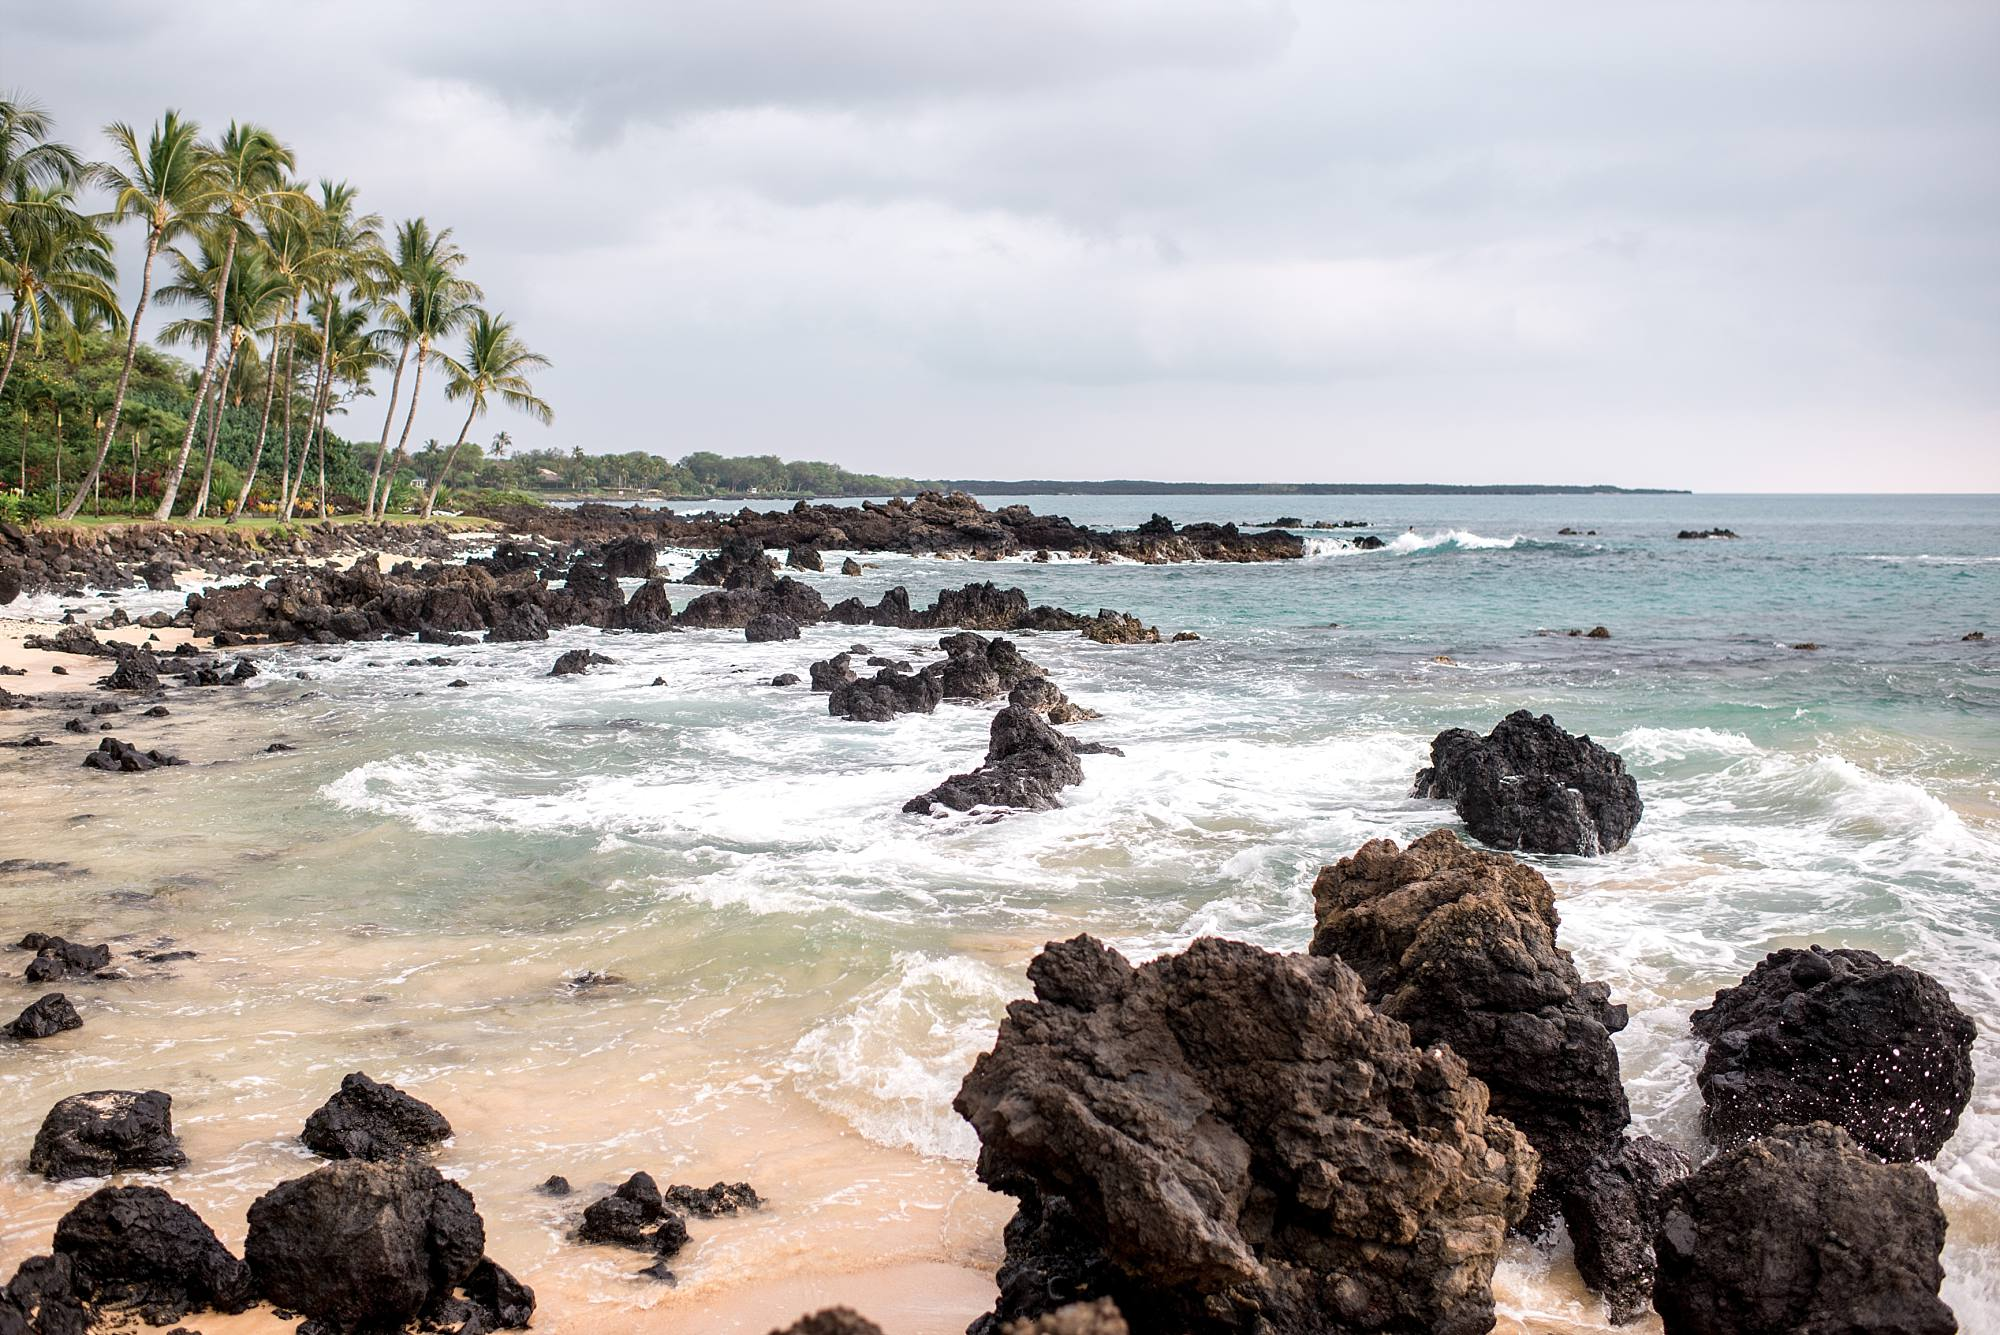 South Maui beach with black rocks and palm trees